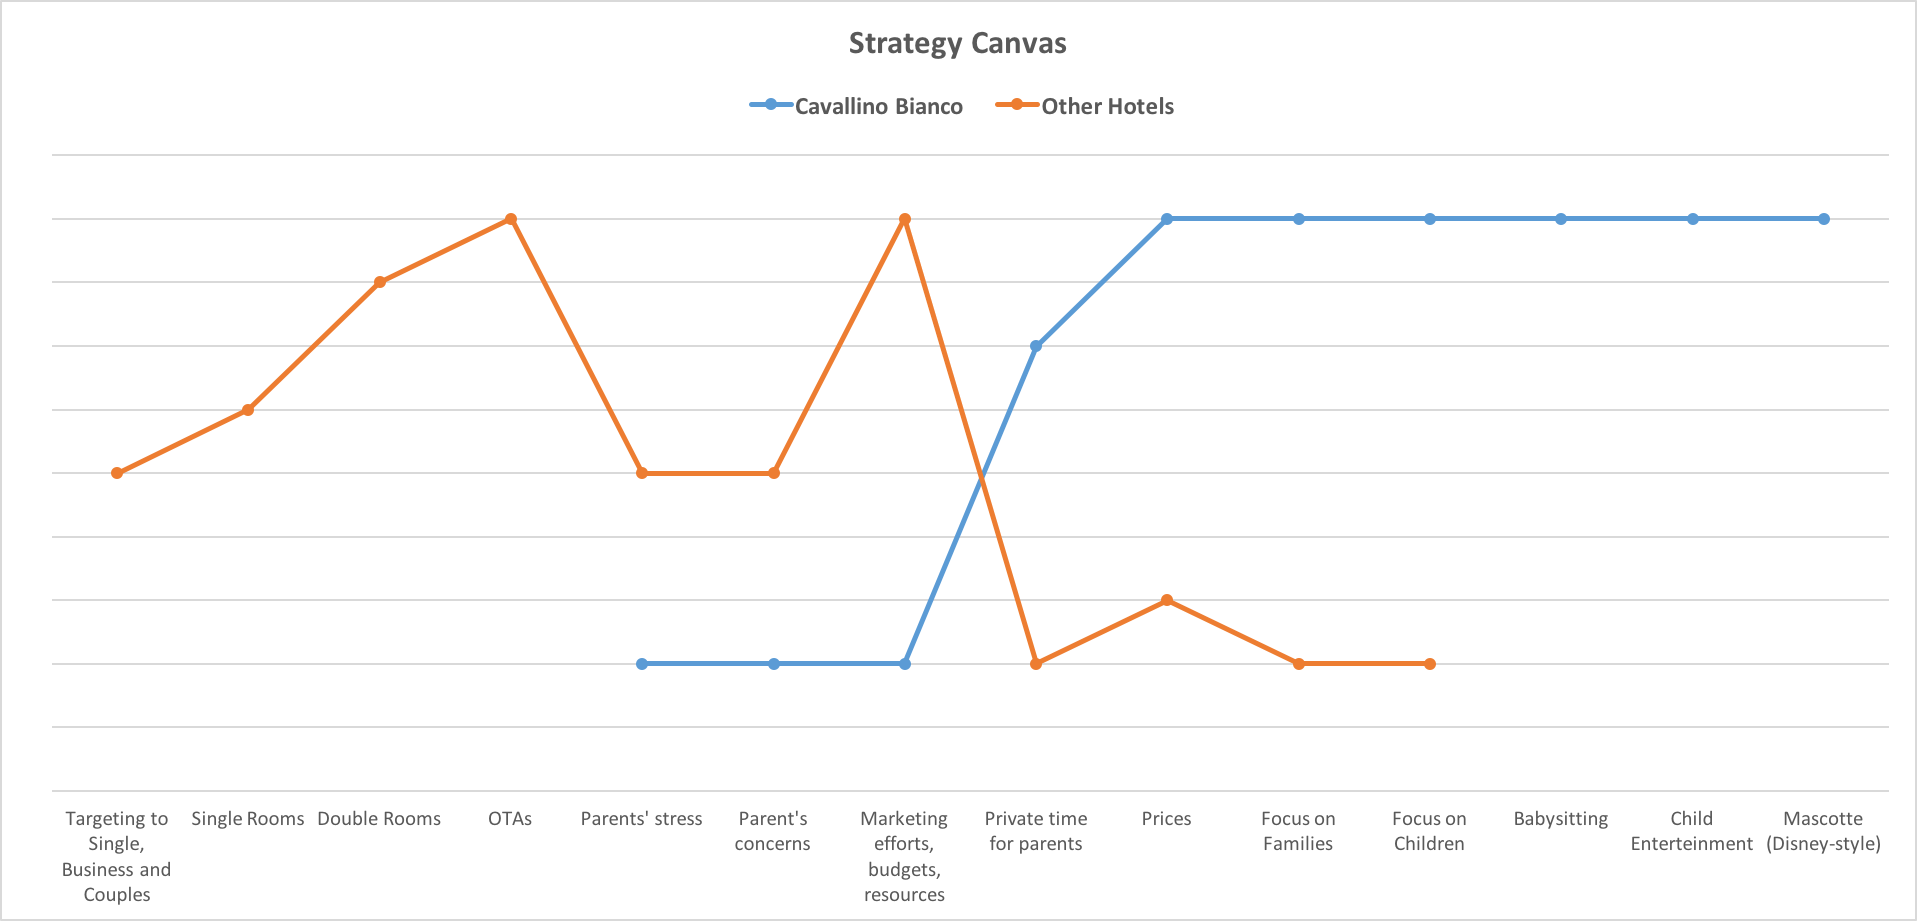 Strategy Canvas Hotel Cavallino Bianco